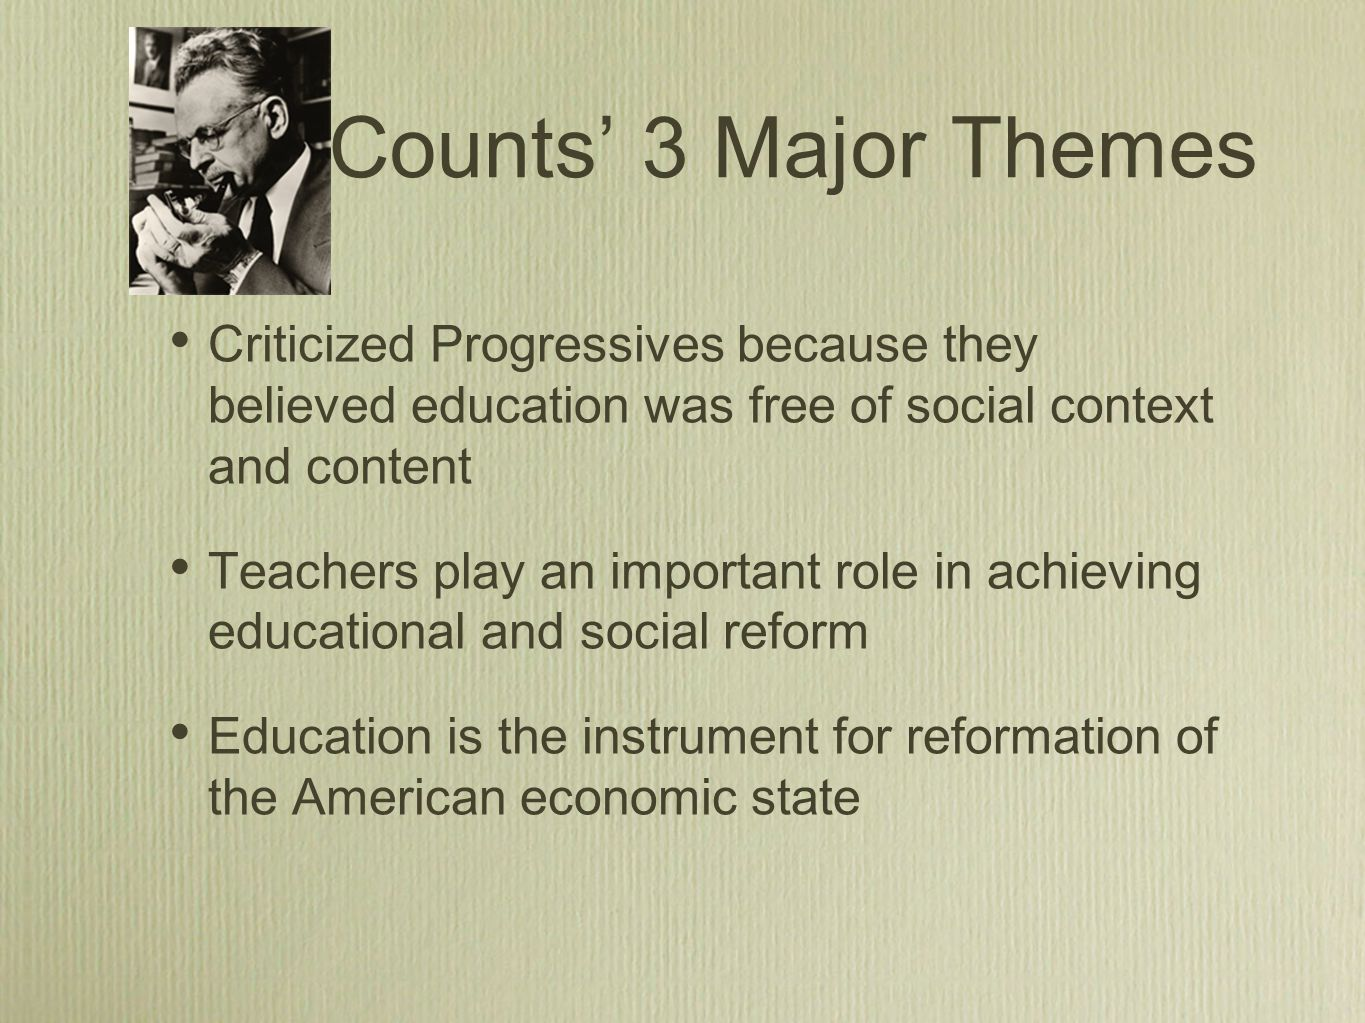 Counts' 3 Major Themes Criticized Progressives because they believed education was free of social context and content Teachers play an important role in achieving educational and social reform Education is the instrument for reformation of the American economic state